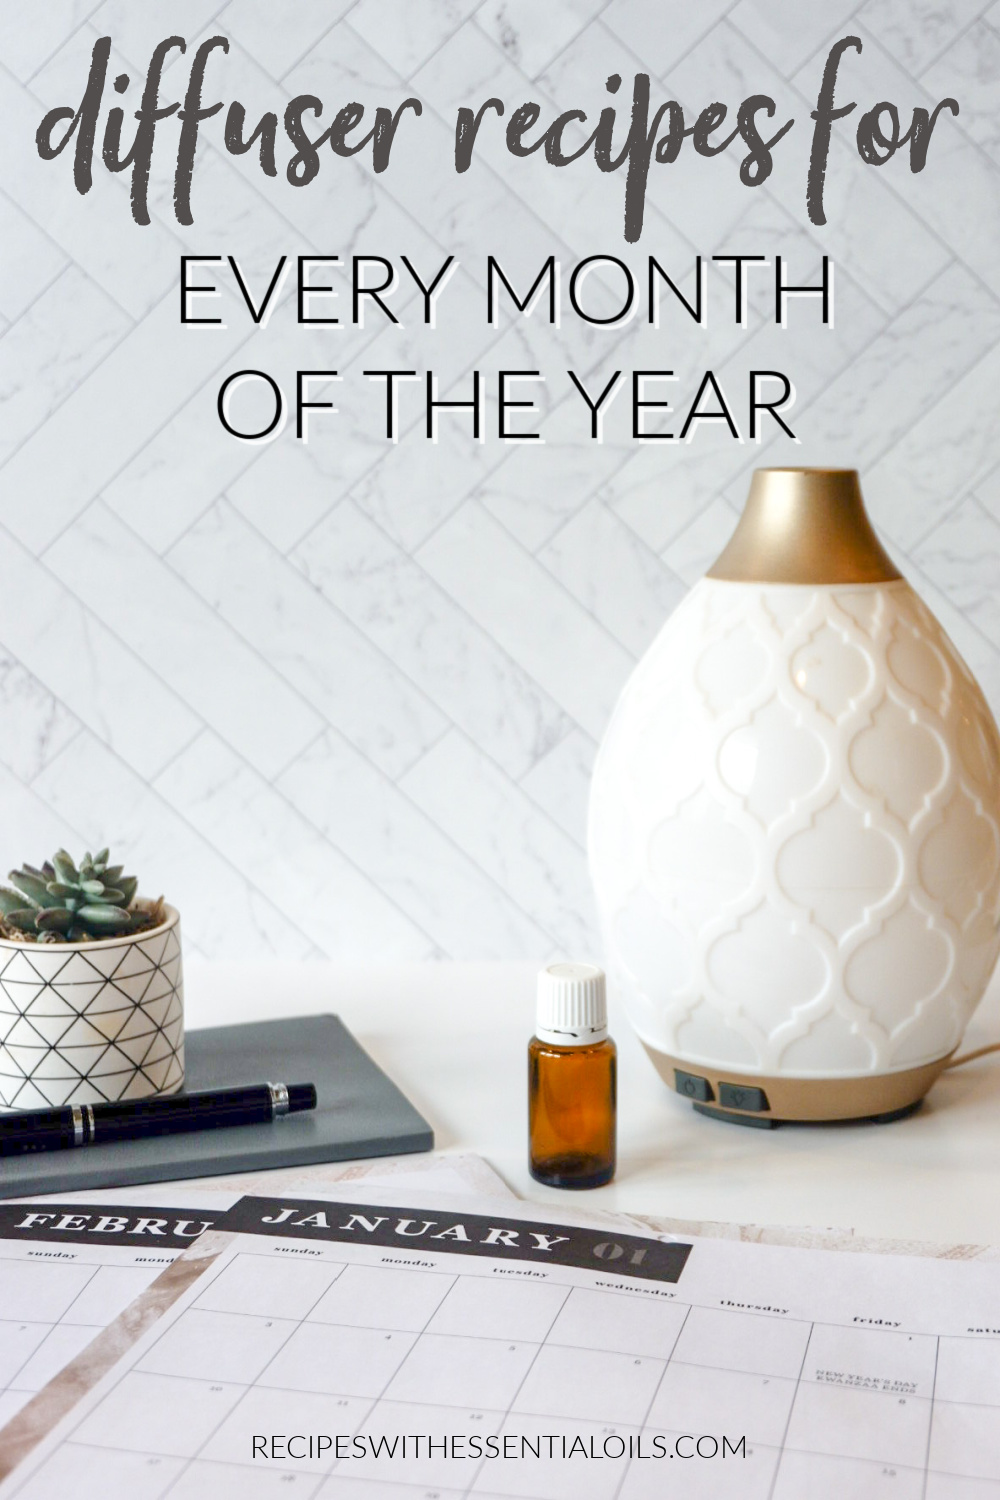 Diffuser Recipes for Every Month of the Year